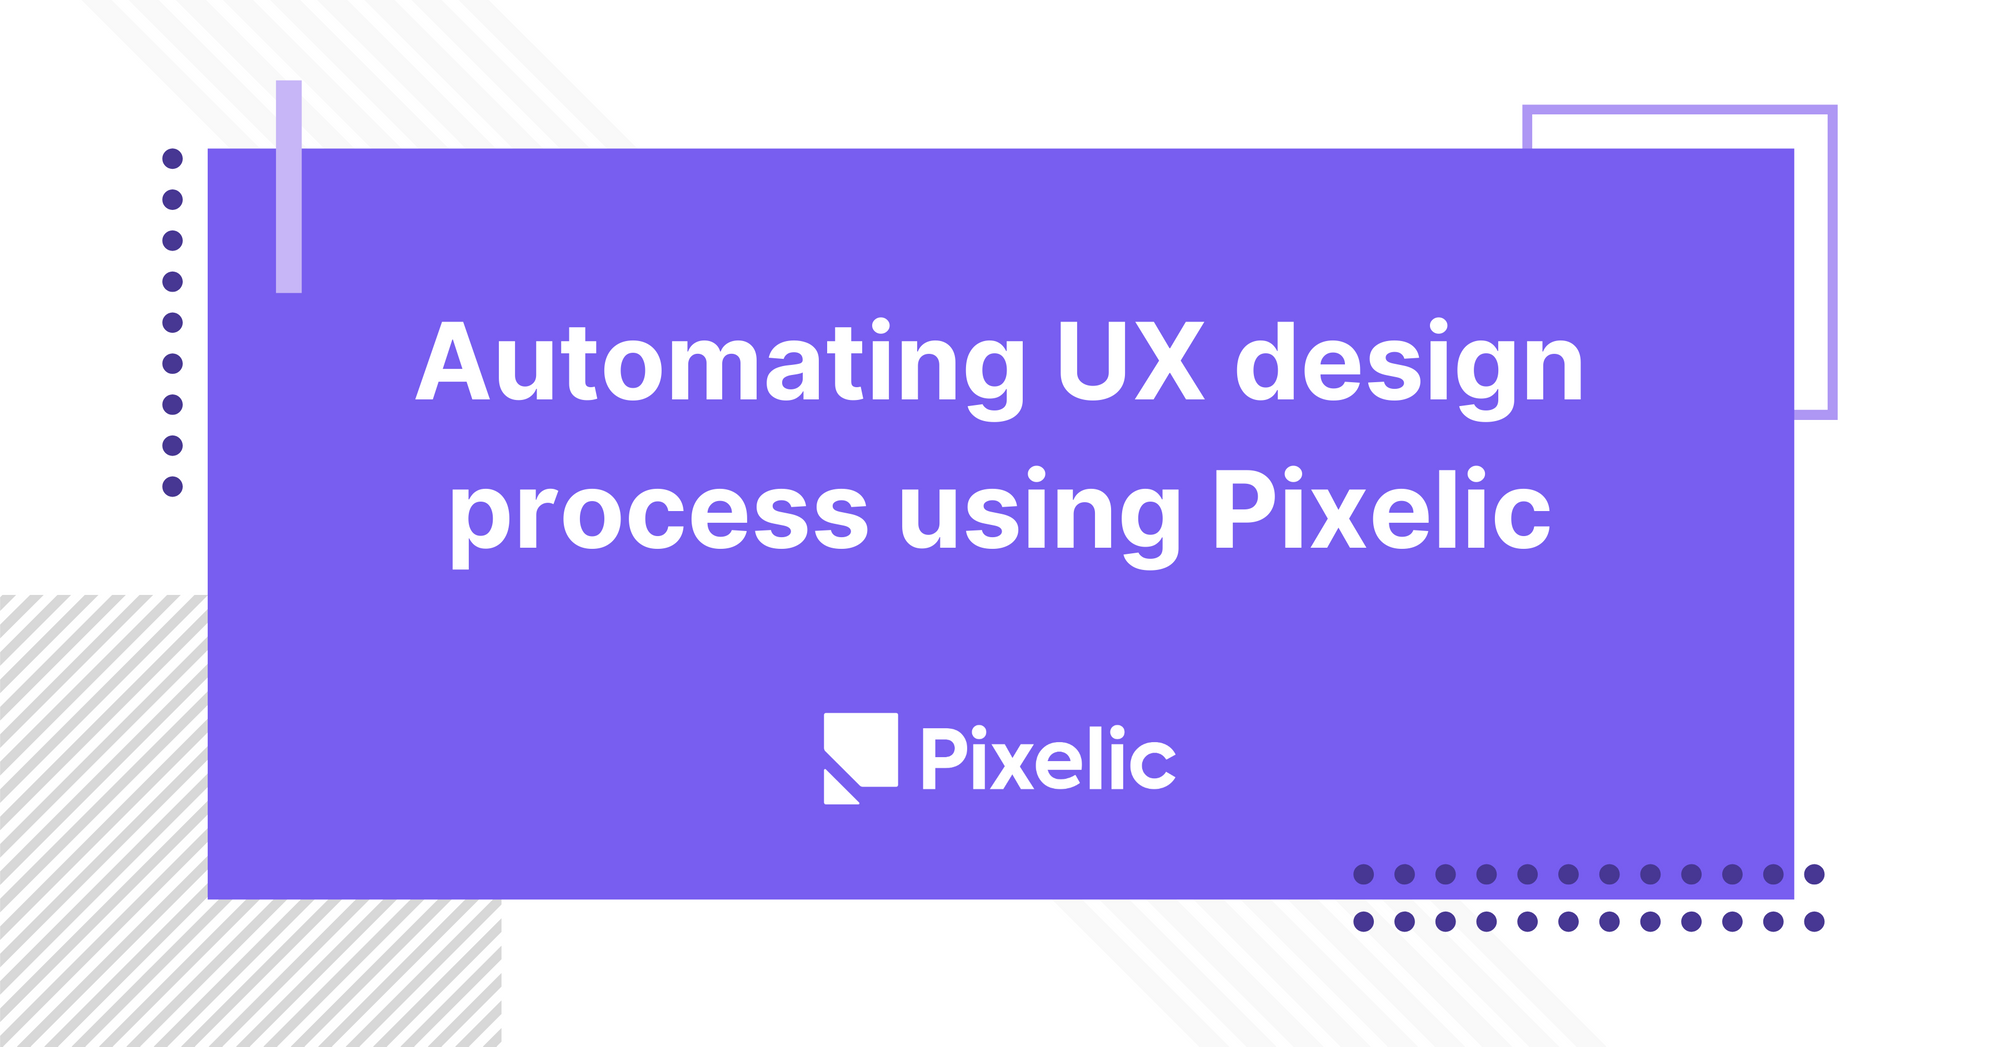 Automating UX design process using Pixelic